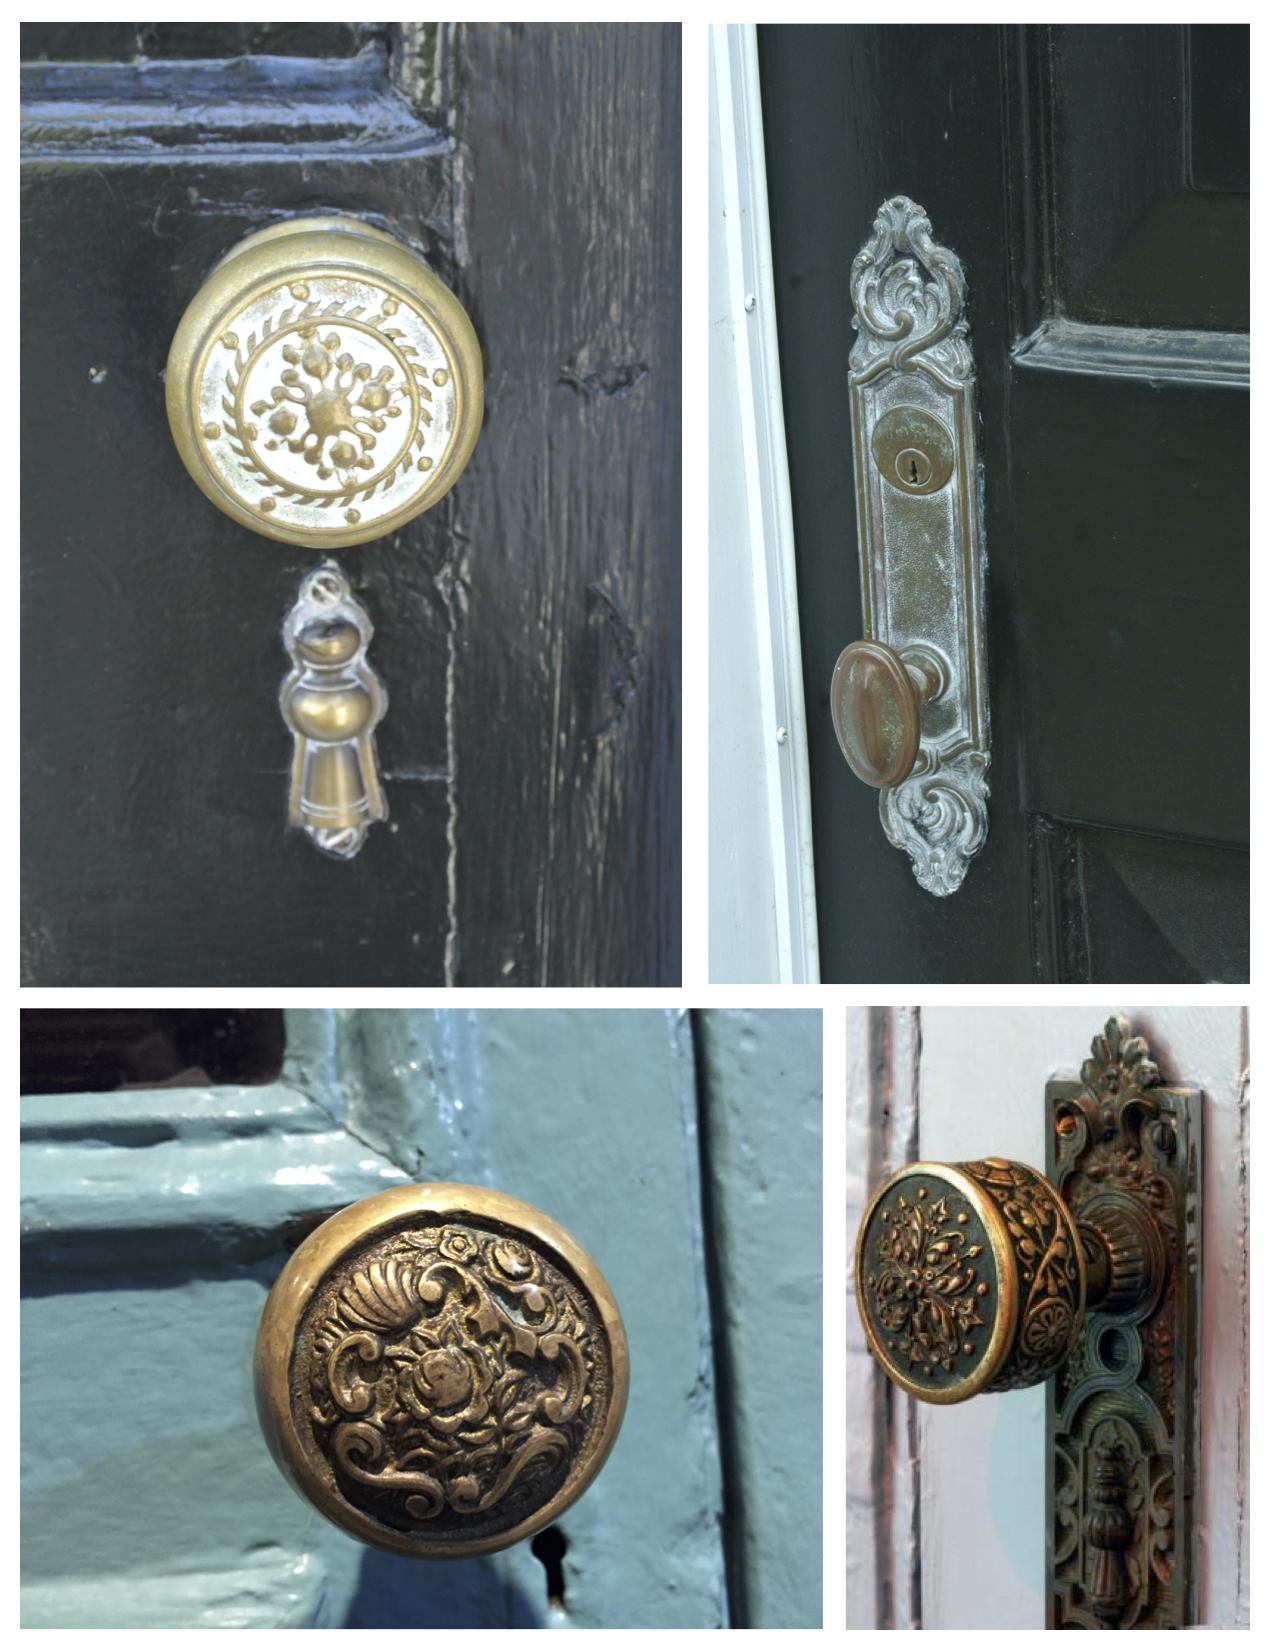 Details Of Past Elegance: The Vintage Door Knob